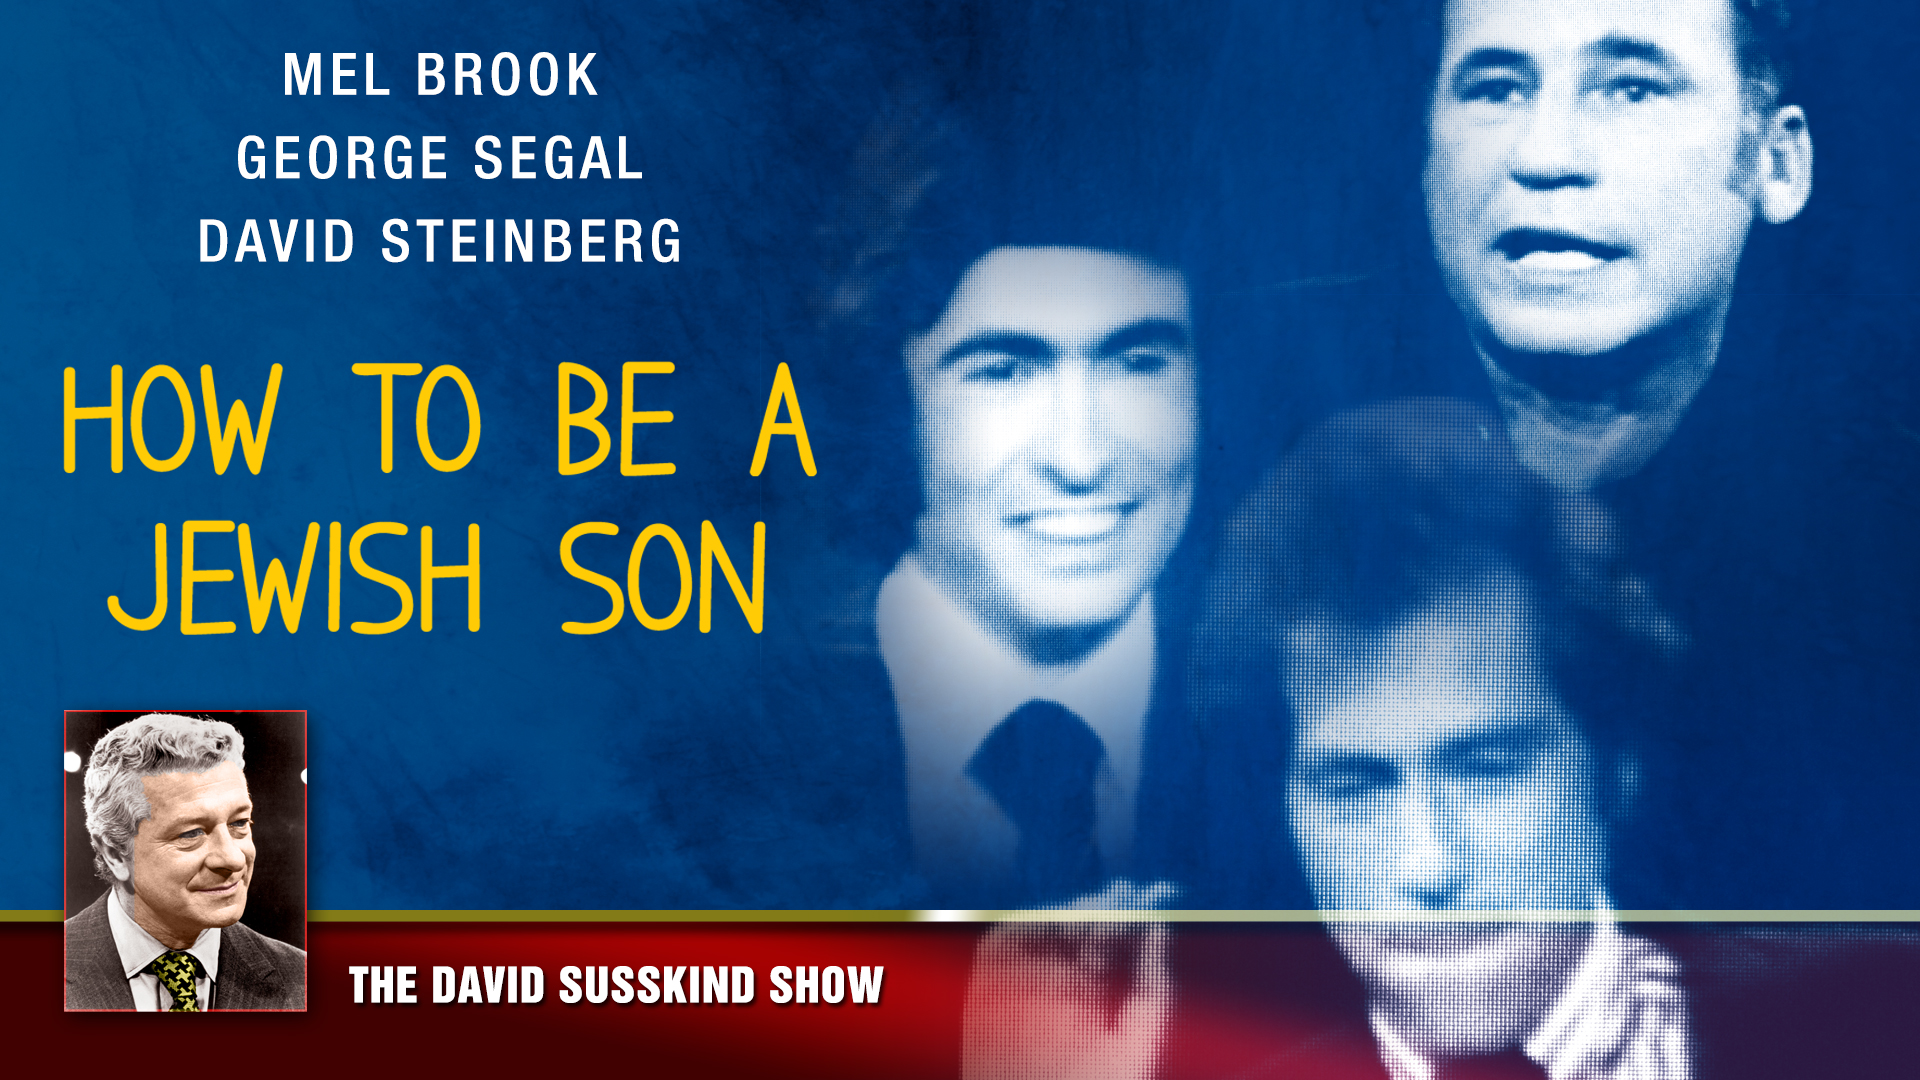 How To Be A Jewish Son